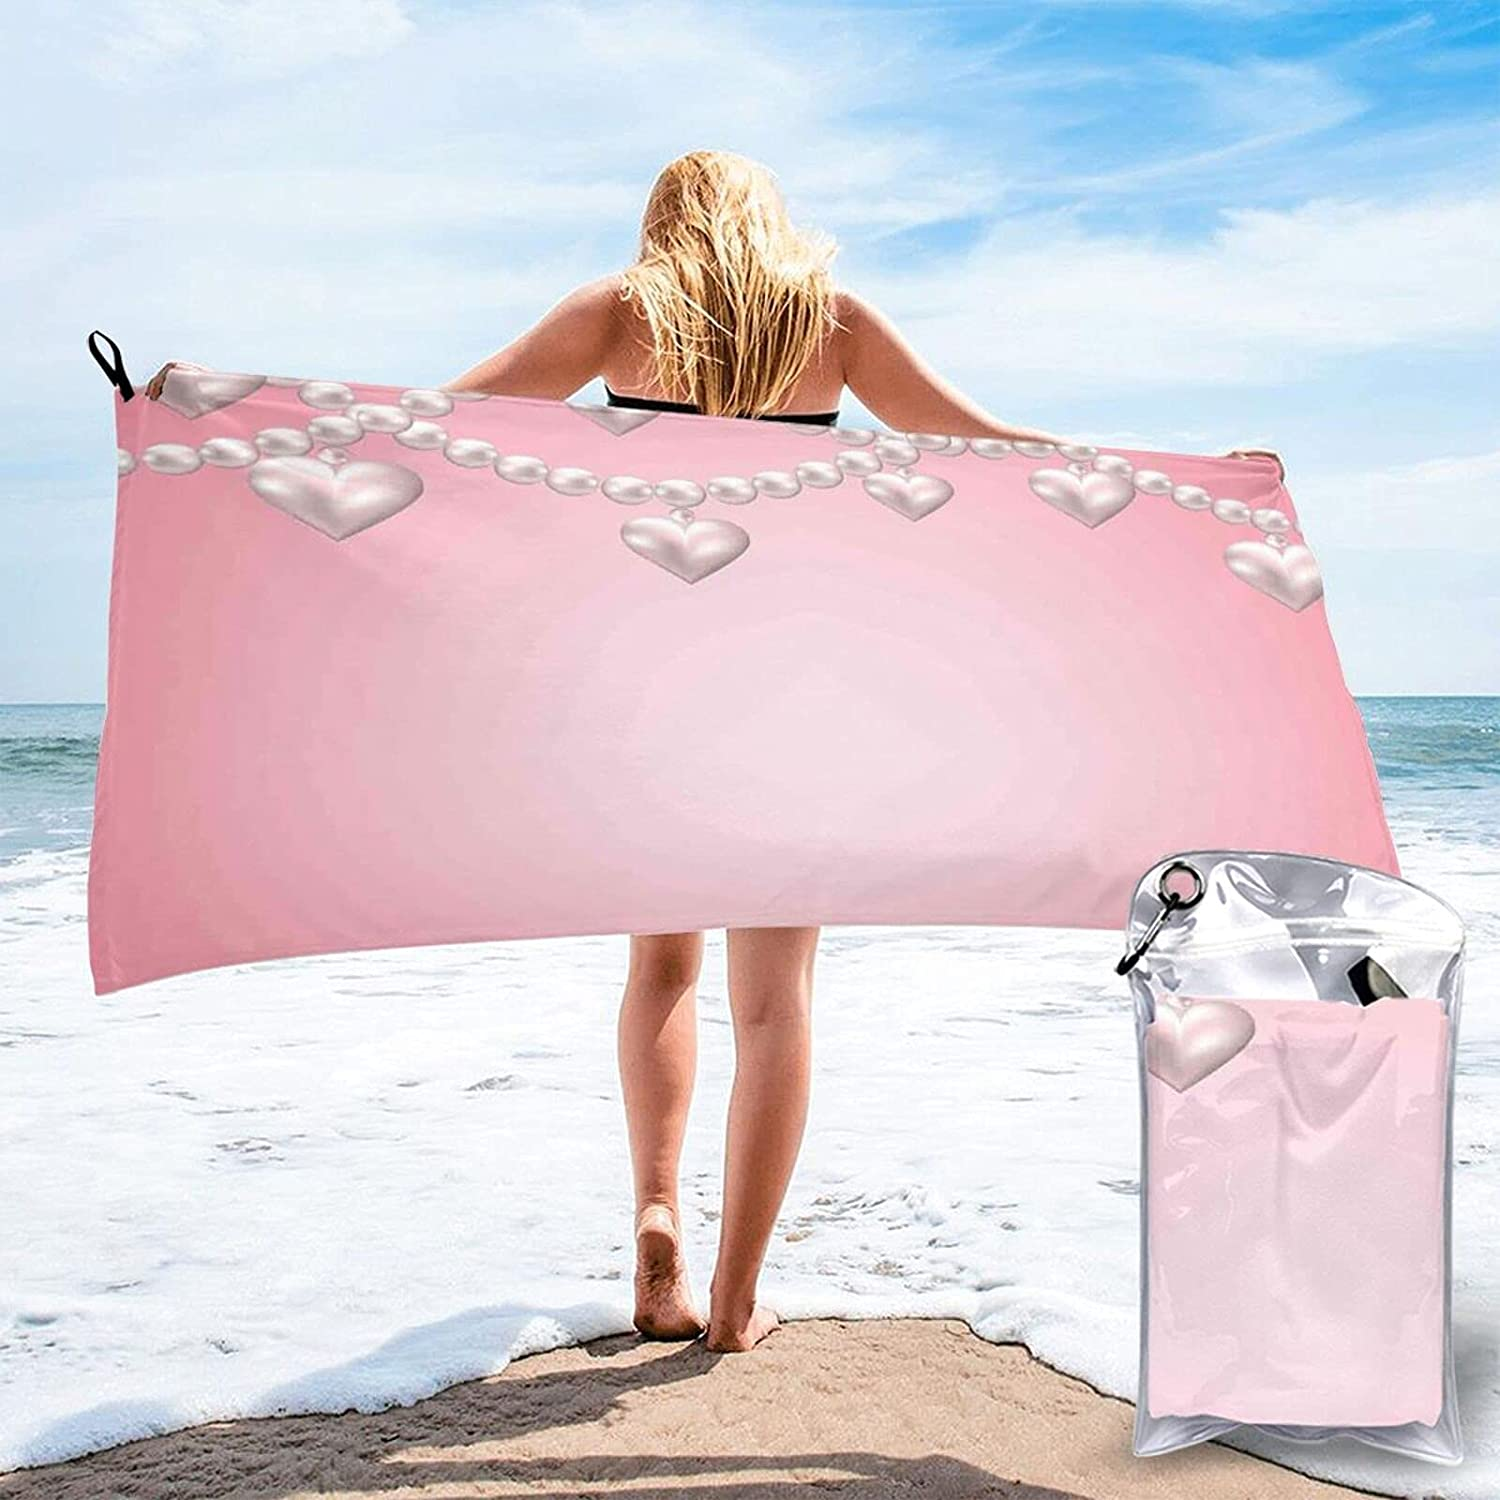 Pearls Beach Towel trust Heart Pearl Blanket Necklace Sale Special Price Lar Design